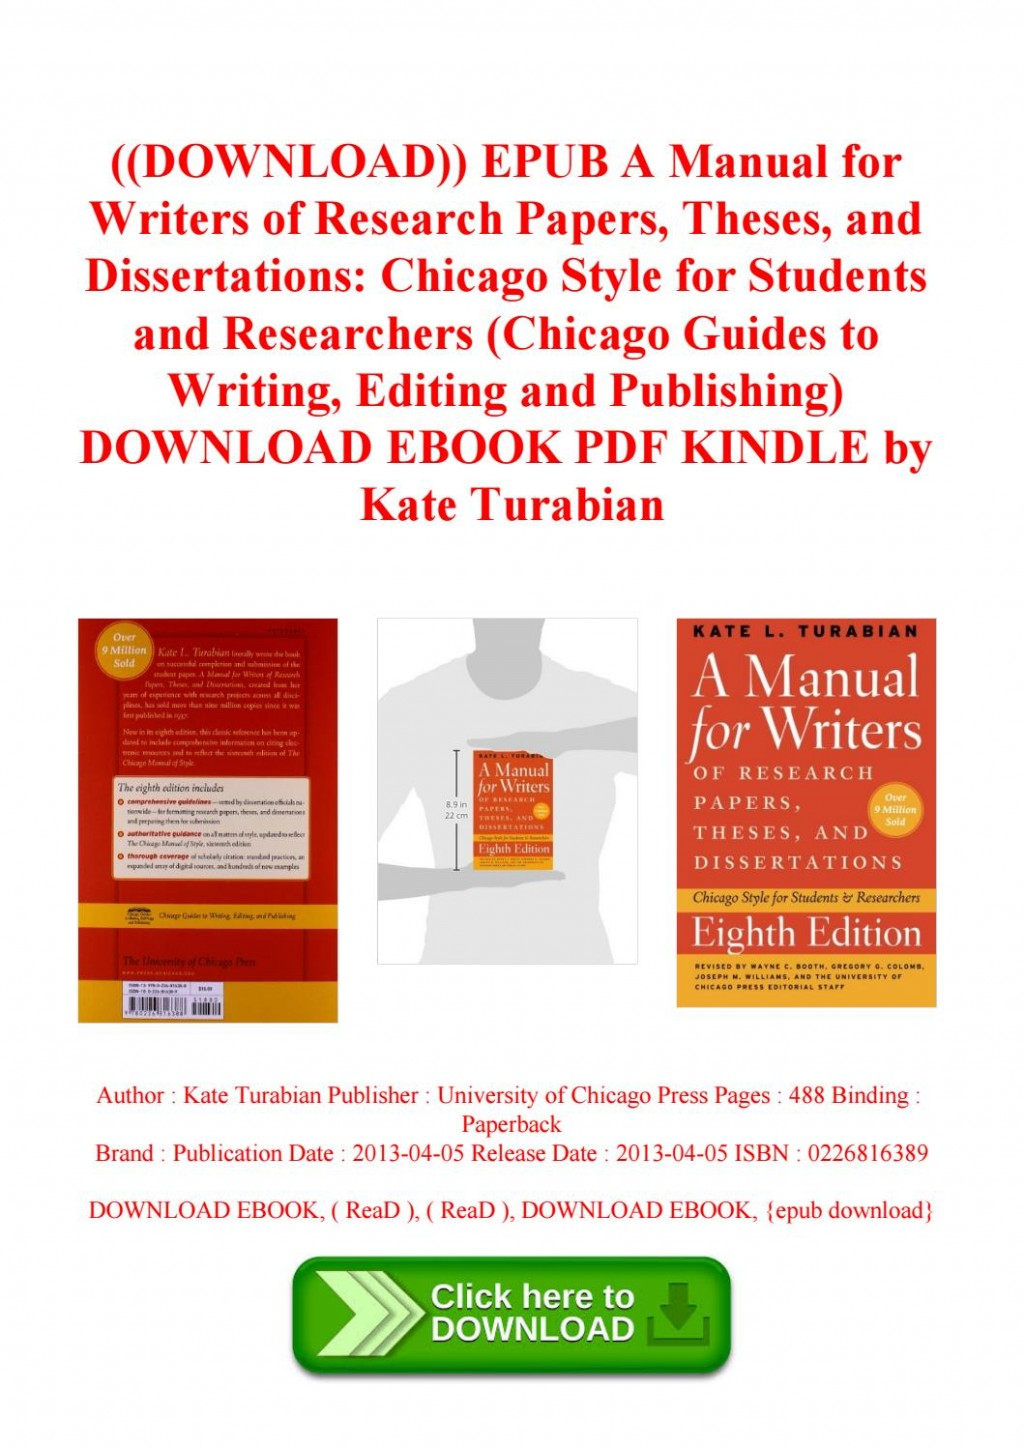 003 Page 1 Manual For Writers Of Researchs Theses And Dissertations Magnificent Research Papers A 8th Pdf Amazon Large